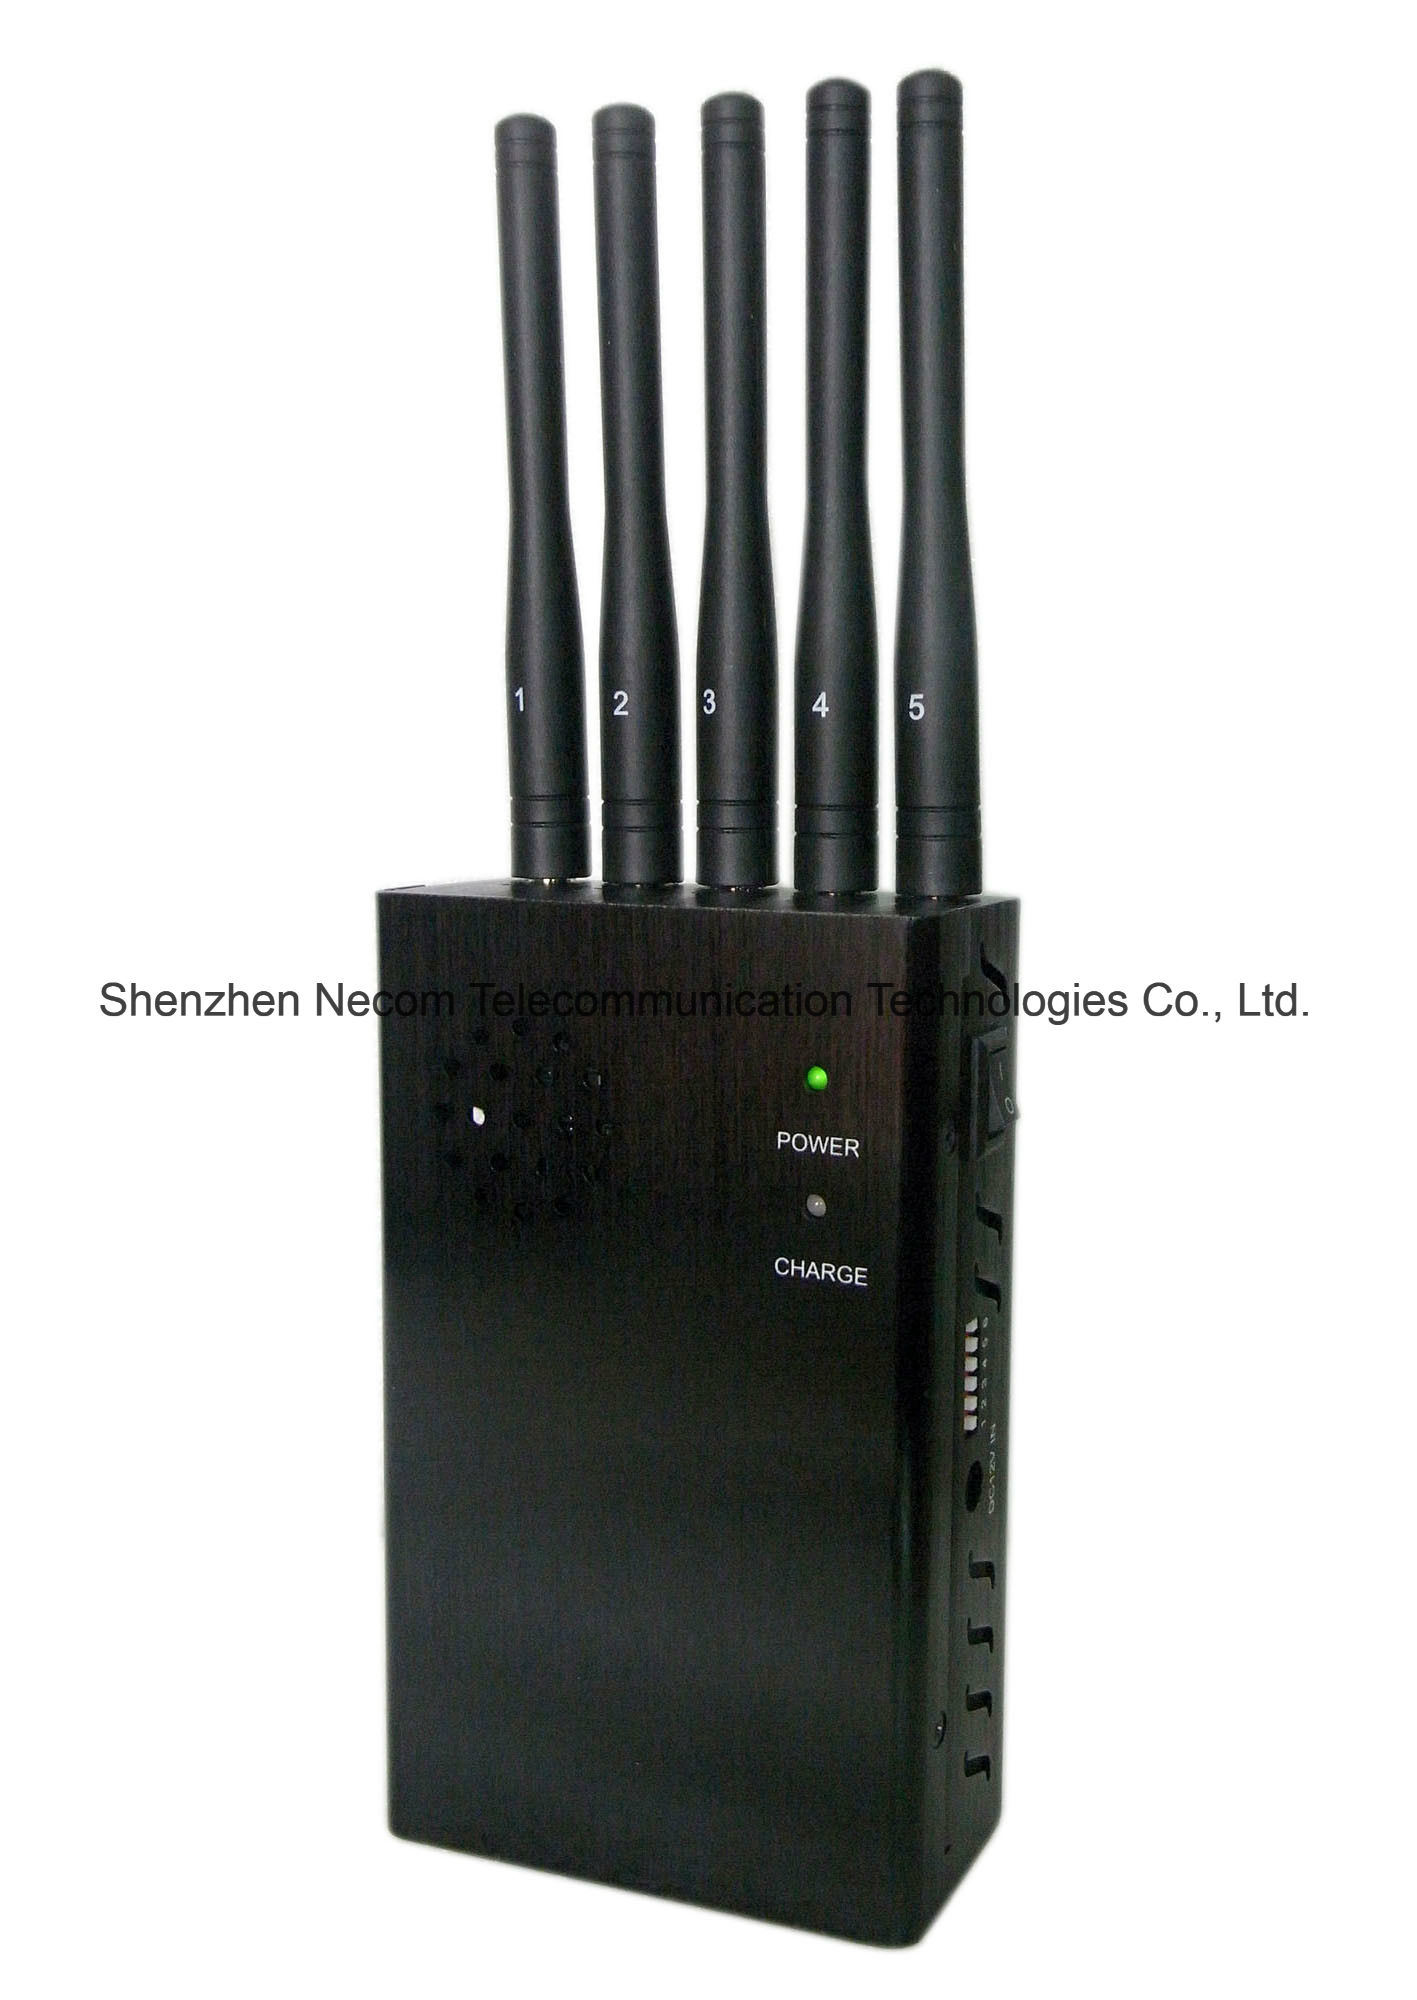 phone line jammer products - China 5 Antenna Big Portable Cell Jammer, Portable GPS Jammer, Portable WiFi Jammer, Jamming 2g+3G+4G+Gpsl1 - China 5 Band Signal Blockers, Five Antennas Jammers